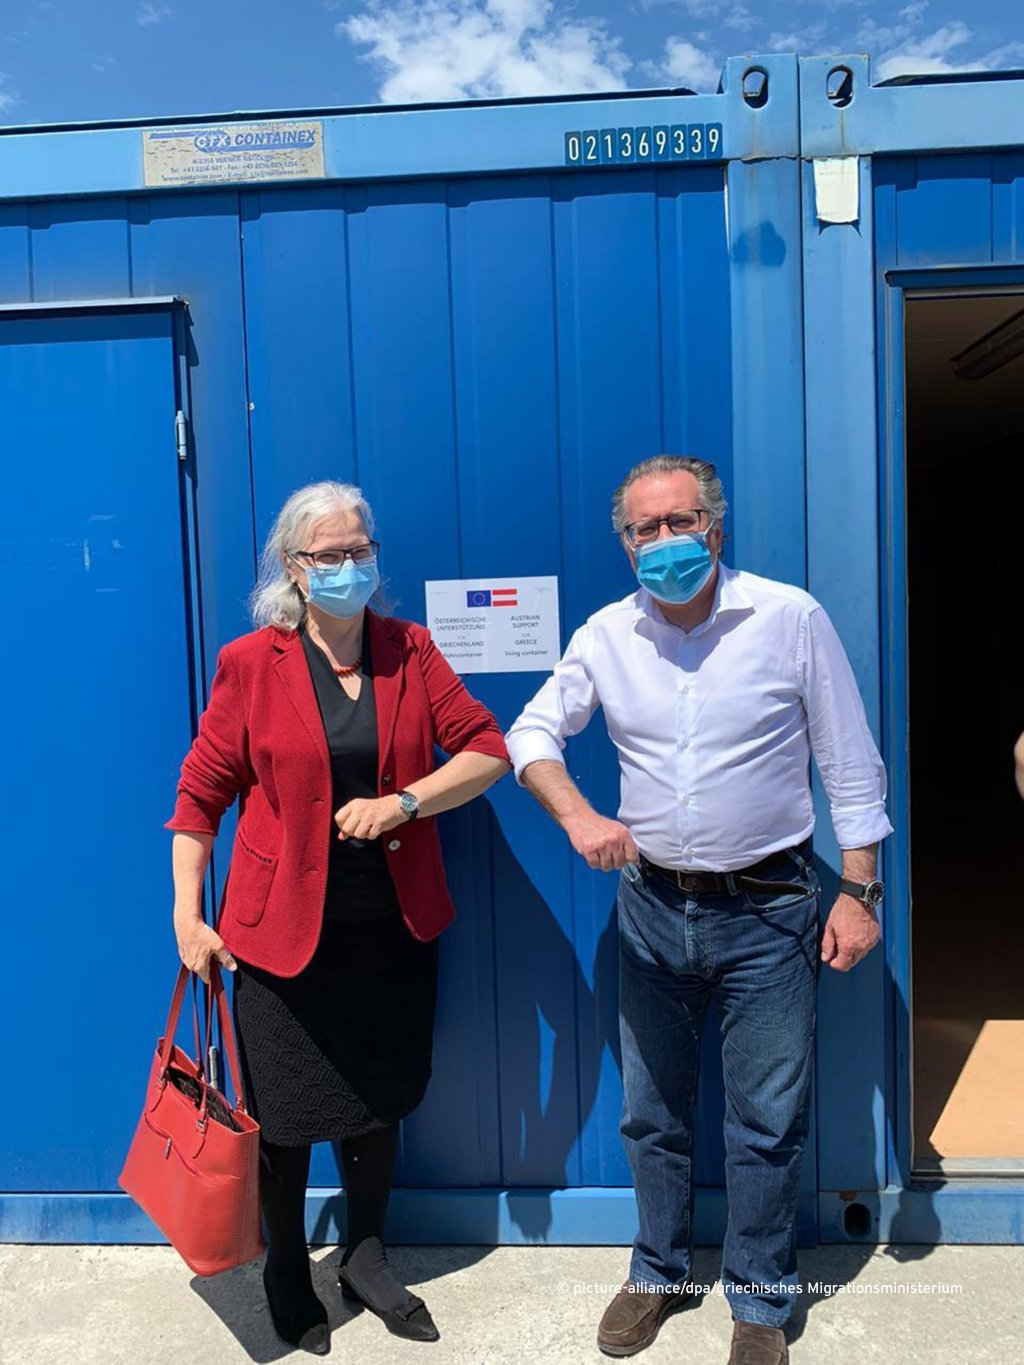 Acting Migration Minister of Greece Giorgos Koumoutsakos (r), with Hermine Poppeller, Austrian envoy, in one of the donated containers | Photo: Greek Migration Ministry/dpa/picture-alliance